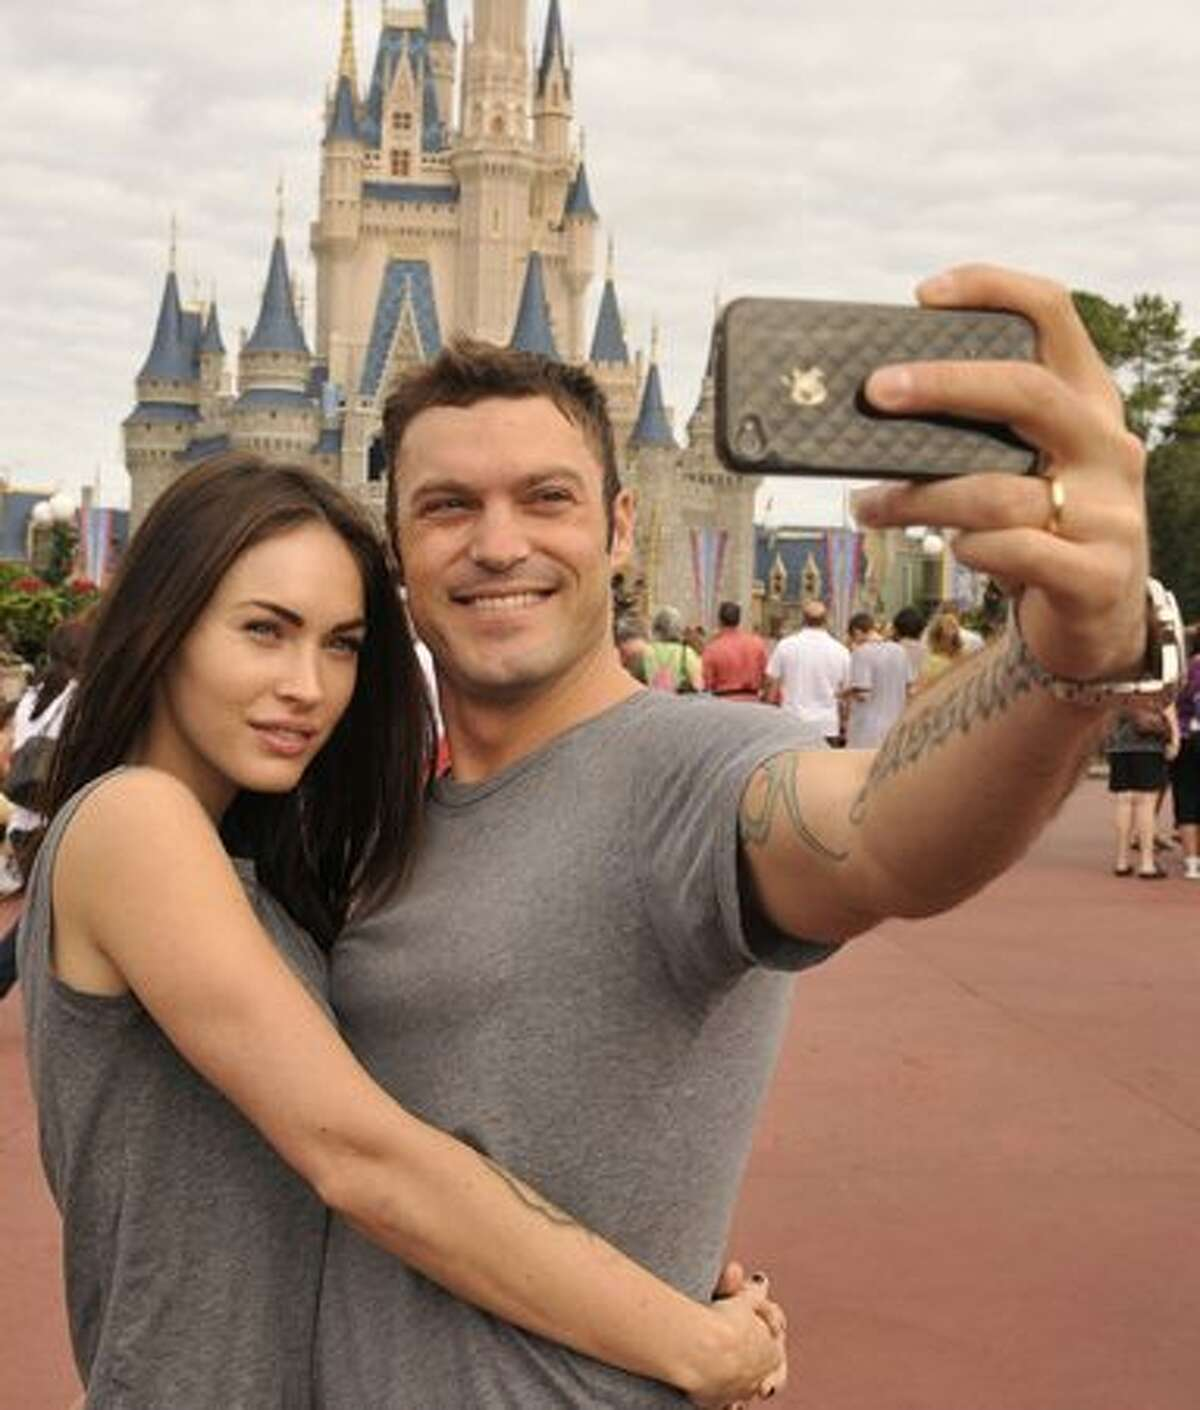 Actor Brian Austin Green (right) and his wife, actress/model Megan Fox (left), take a souvenir photo in the Magic Kingdom in Lake Buena Vista, Florida.